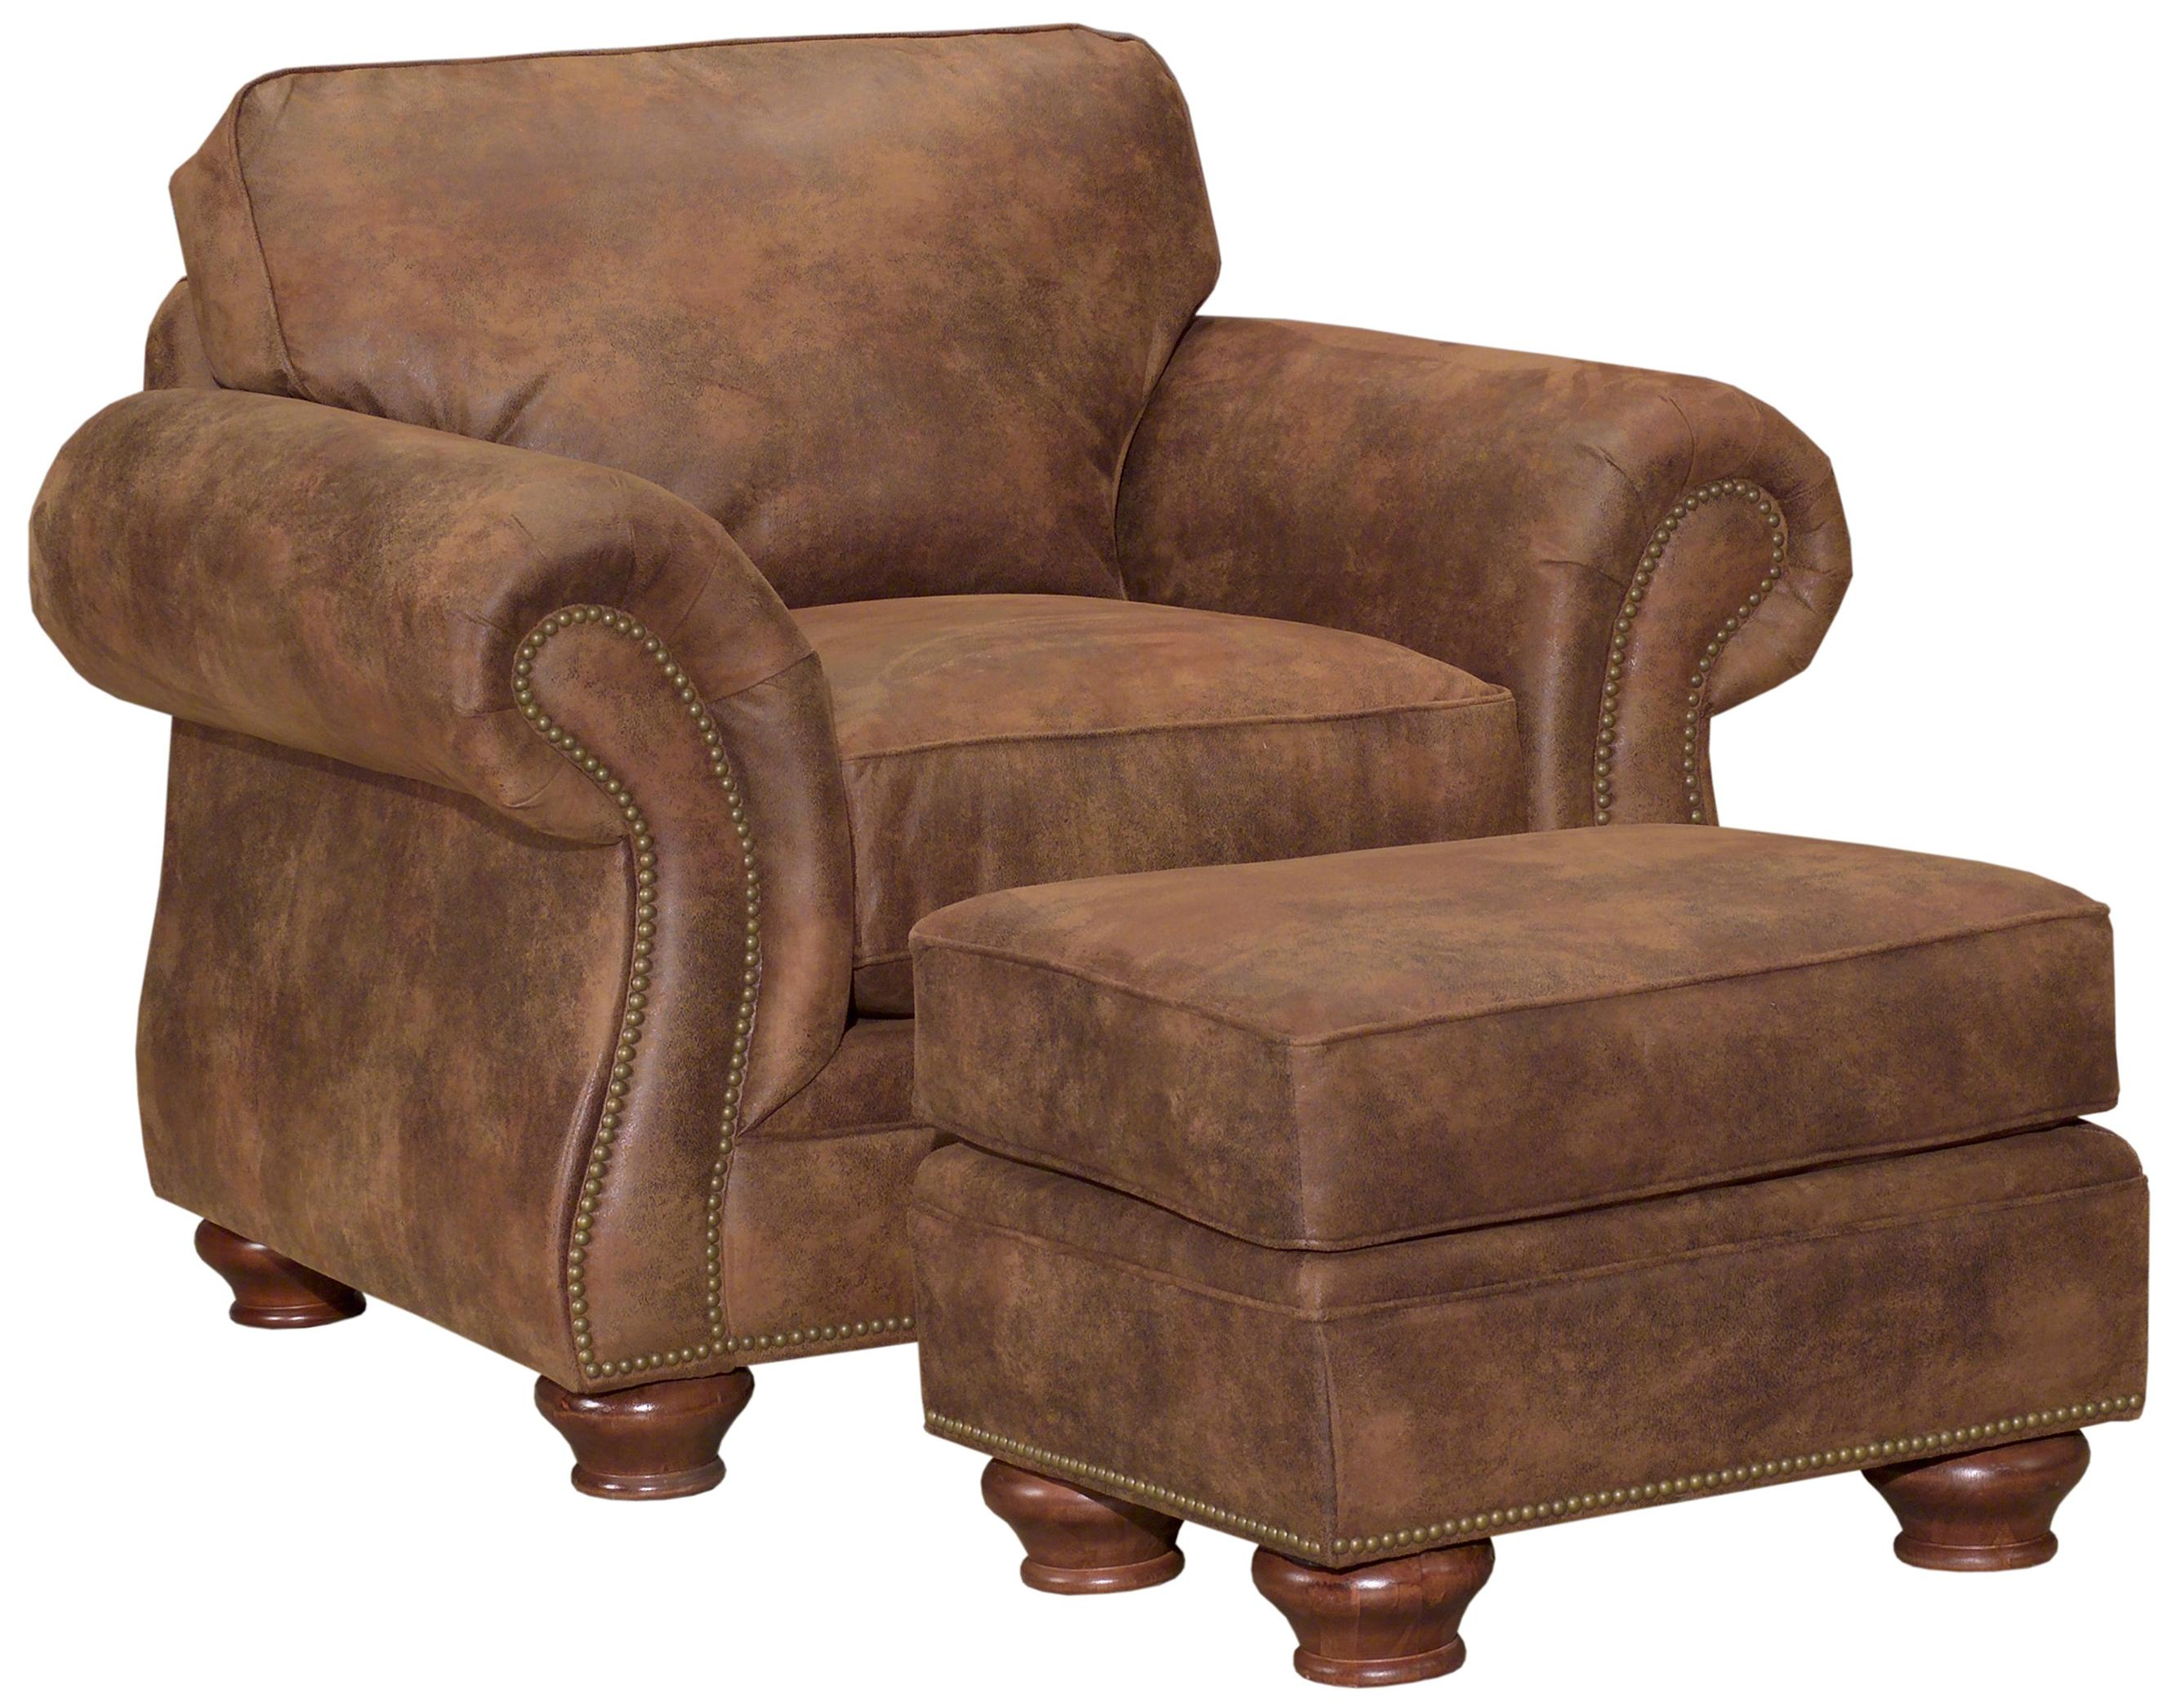 broyhill laramie sofa fabric large slipcovers cotton express quick ship traditional chair